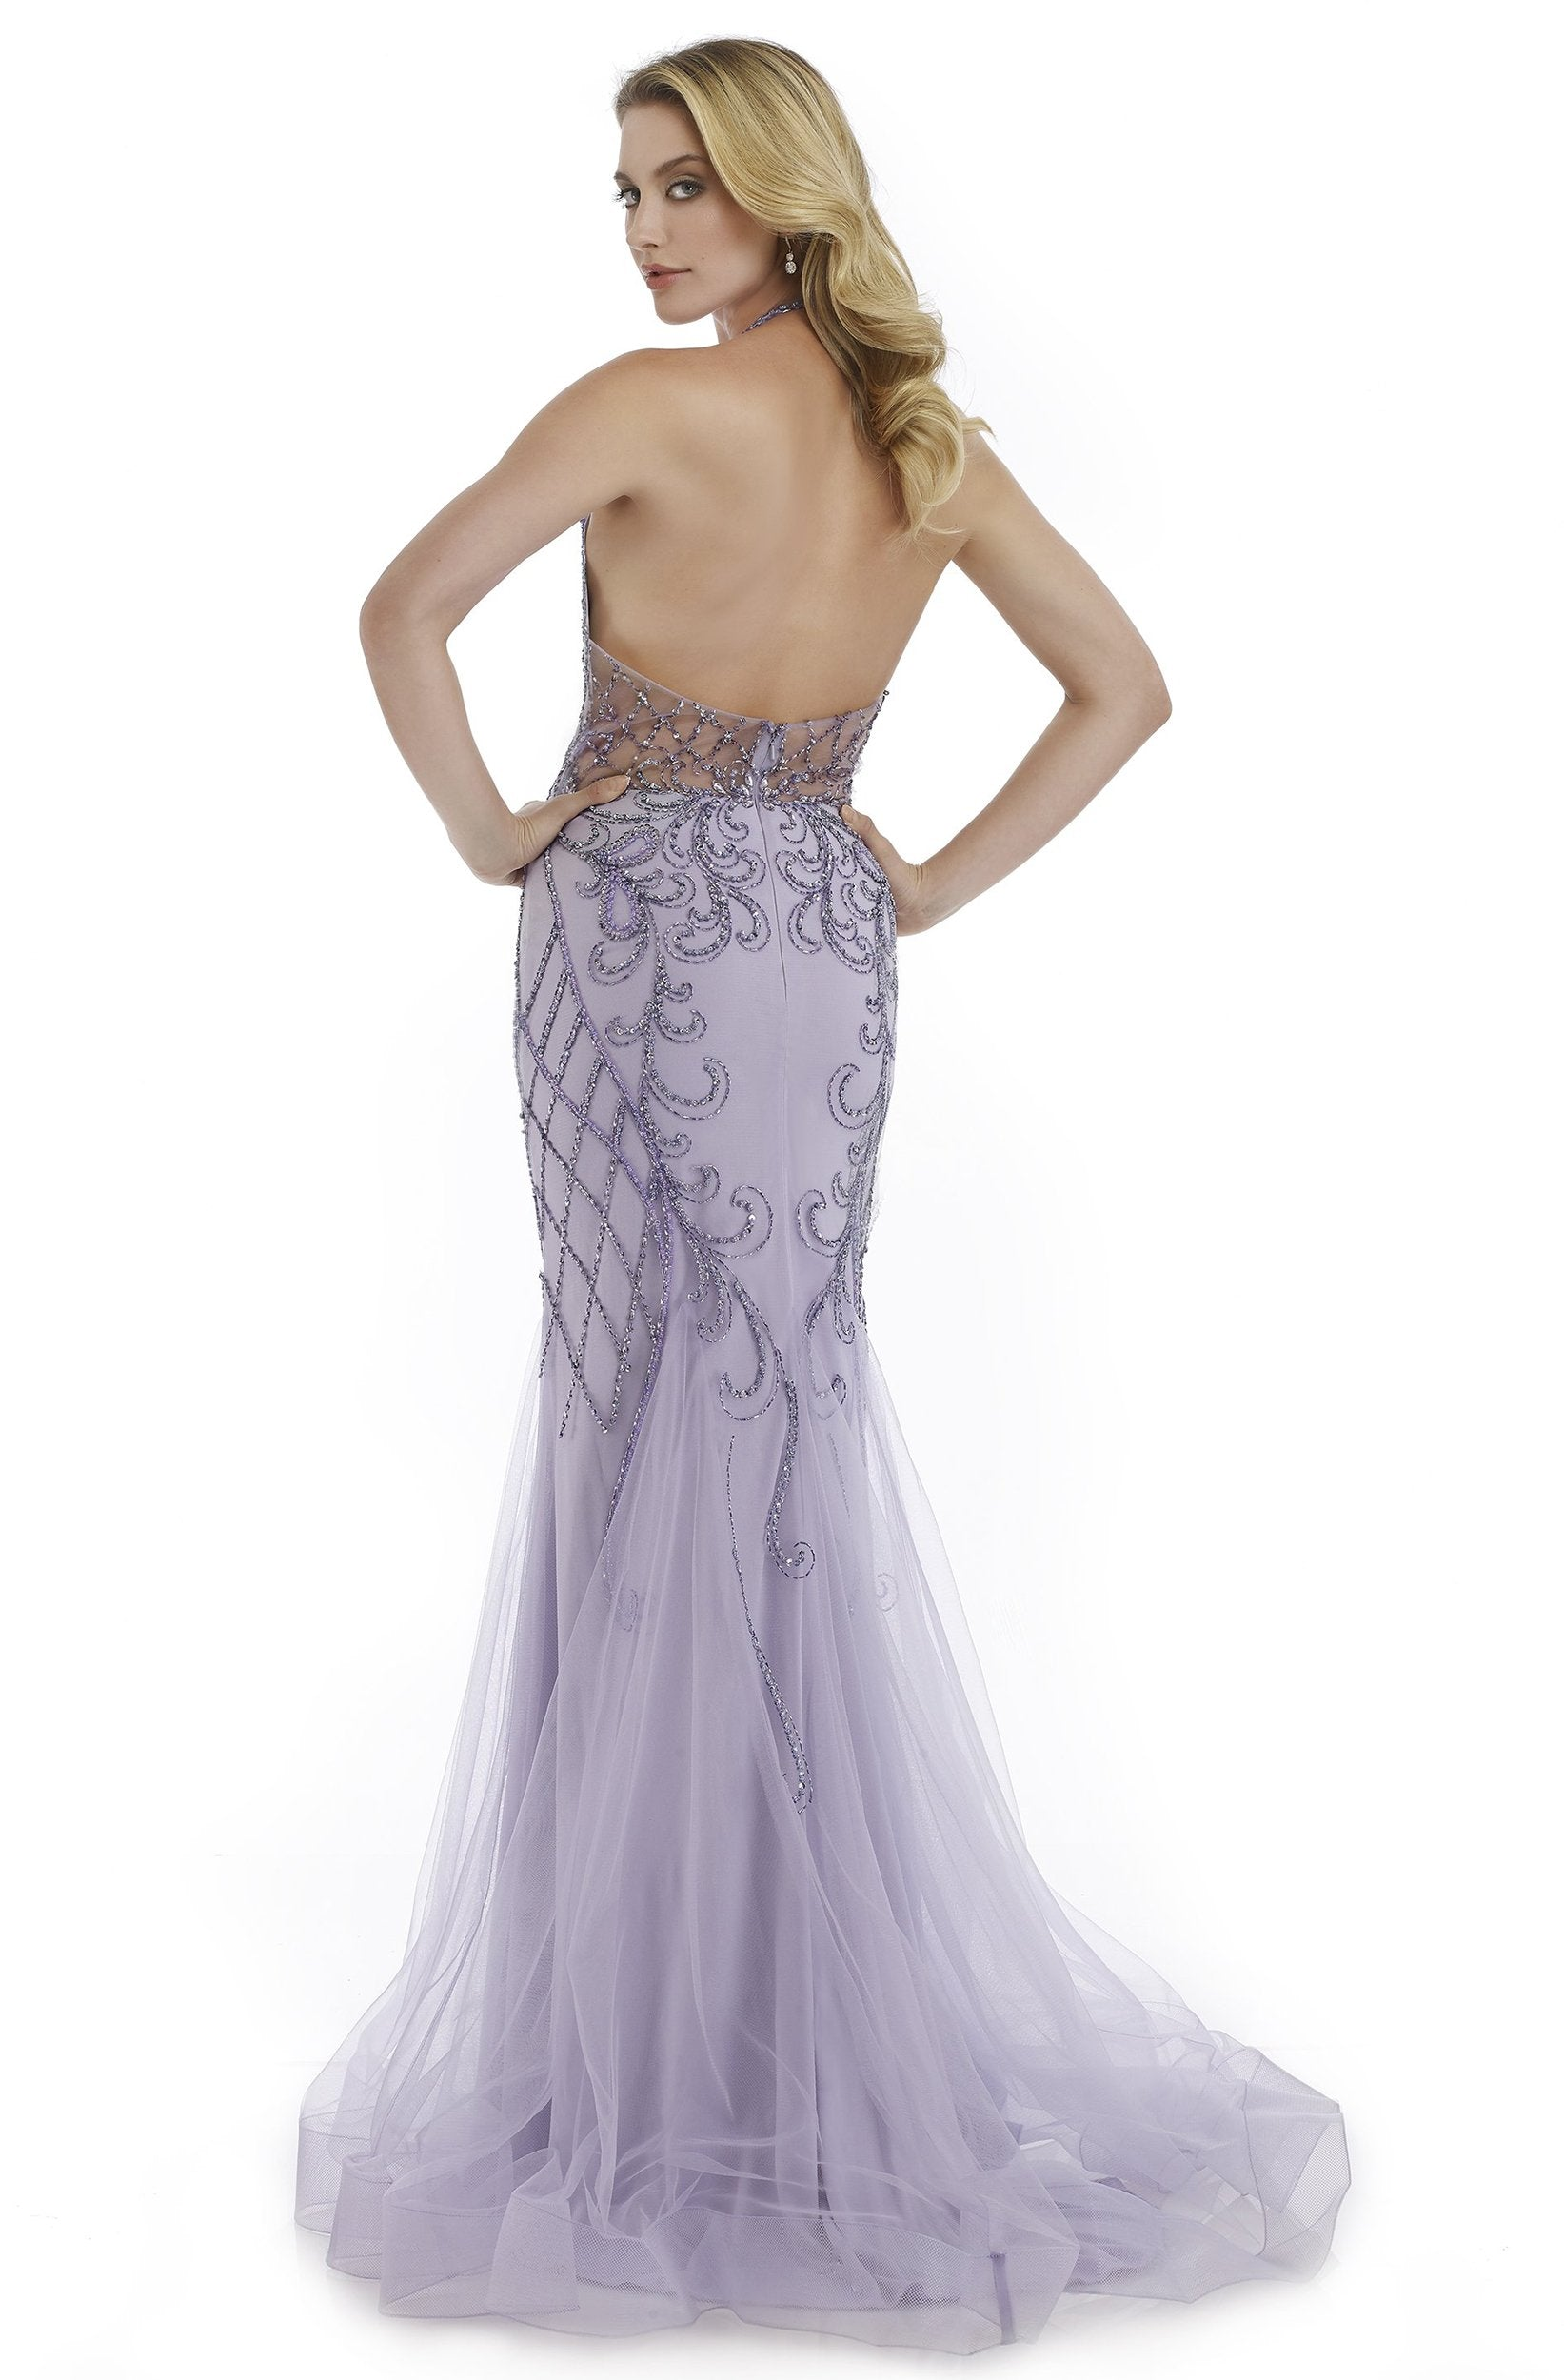 Morrell Maxie - 16003 Illusion Halter Neck Beaded Mermaid Gown in Purple